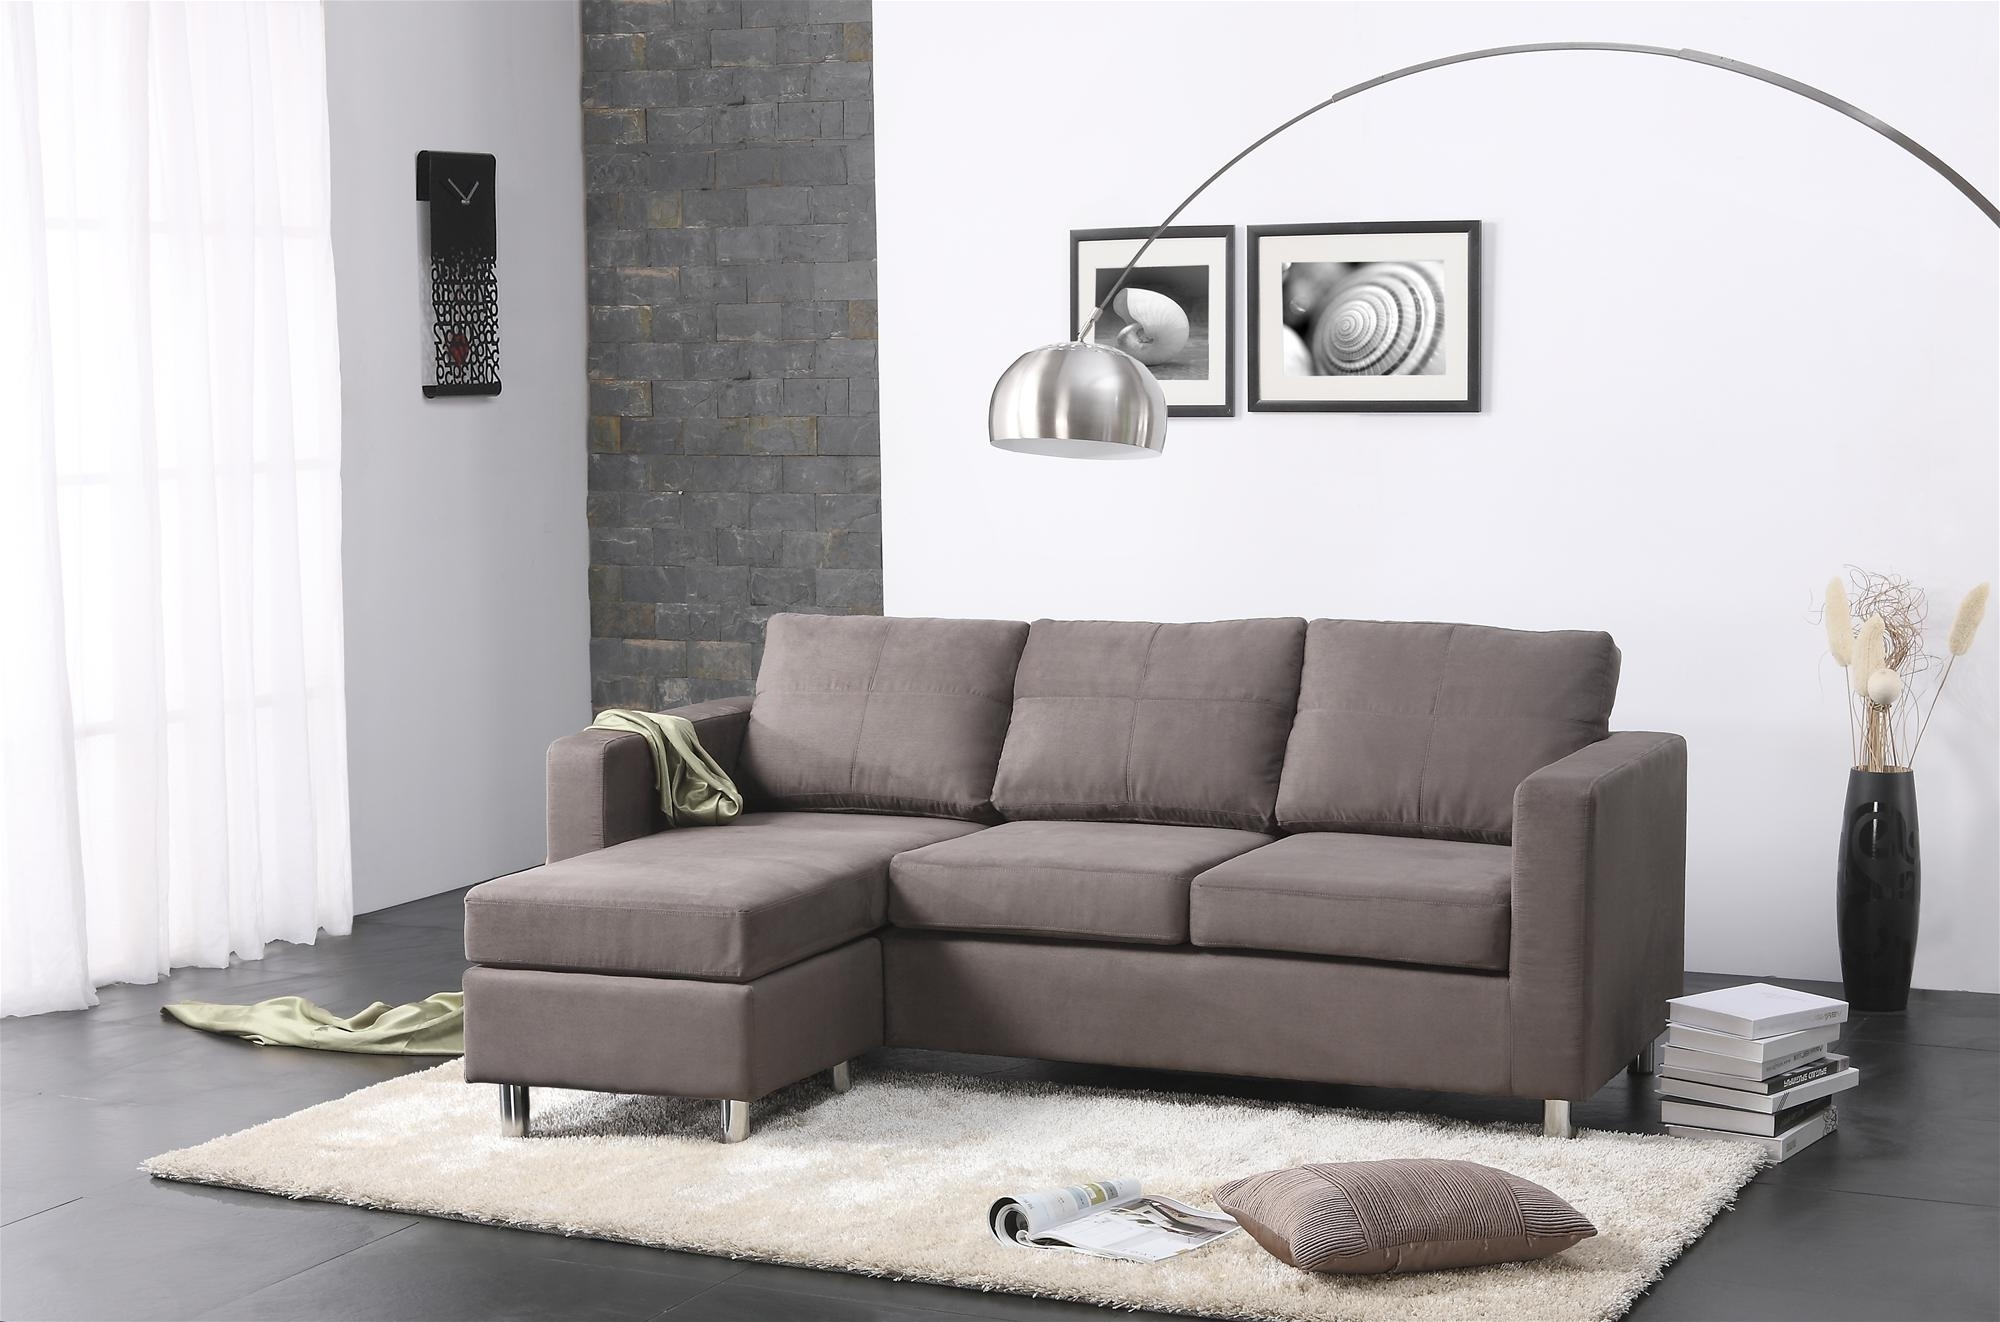 Most Current Sofa : Small Sofas For Small Spaces Tiny Sleeper Sofa Retro Sofa With Regard To Small Spaces Sectional Sofas (View 7 of 20)